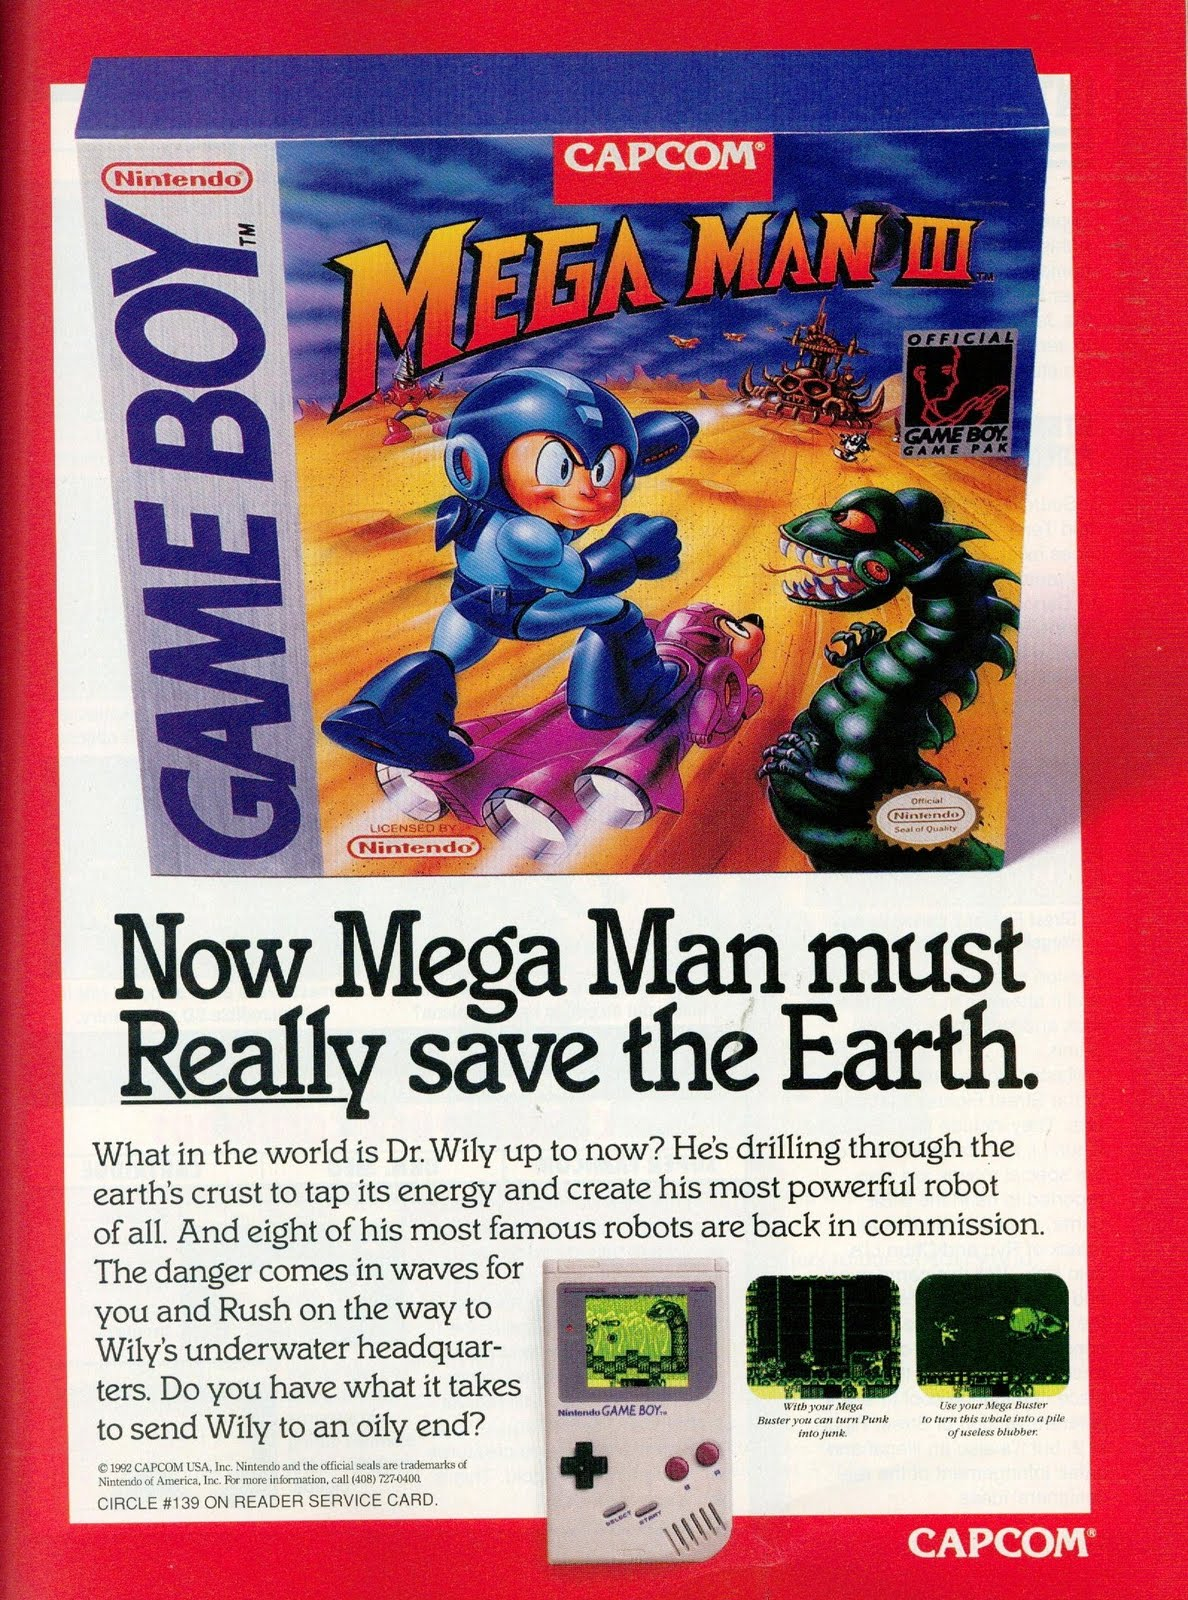 Gameboy color ad - Mega Man 3 Ad For Gameboy Megaman Ads Pinterest Mega Man And Chang E 3